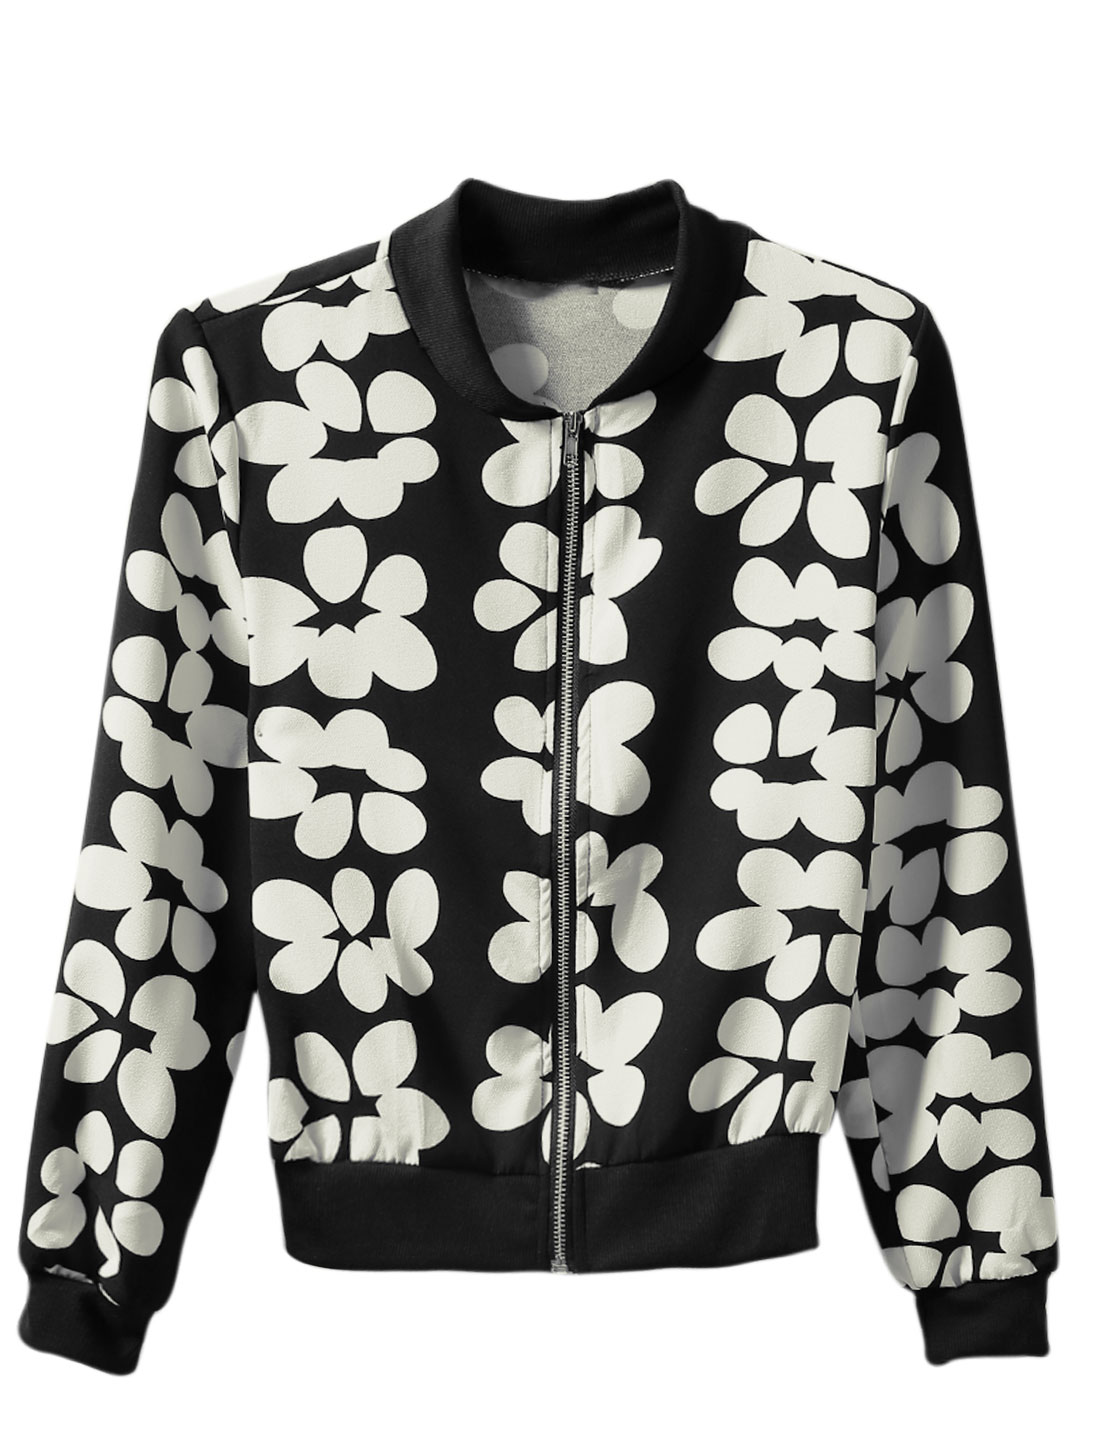 Cozy Fit Floral Pattern Zip Up Leisure Jacket for Lady Black White S